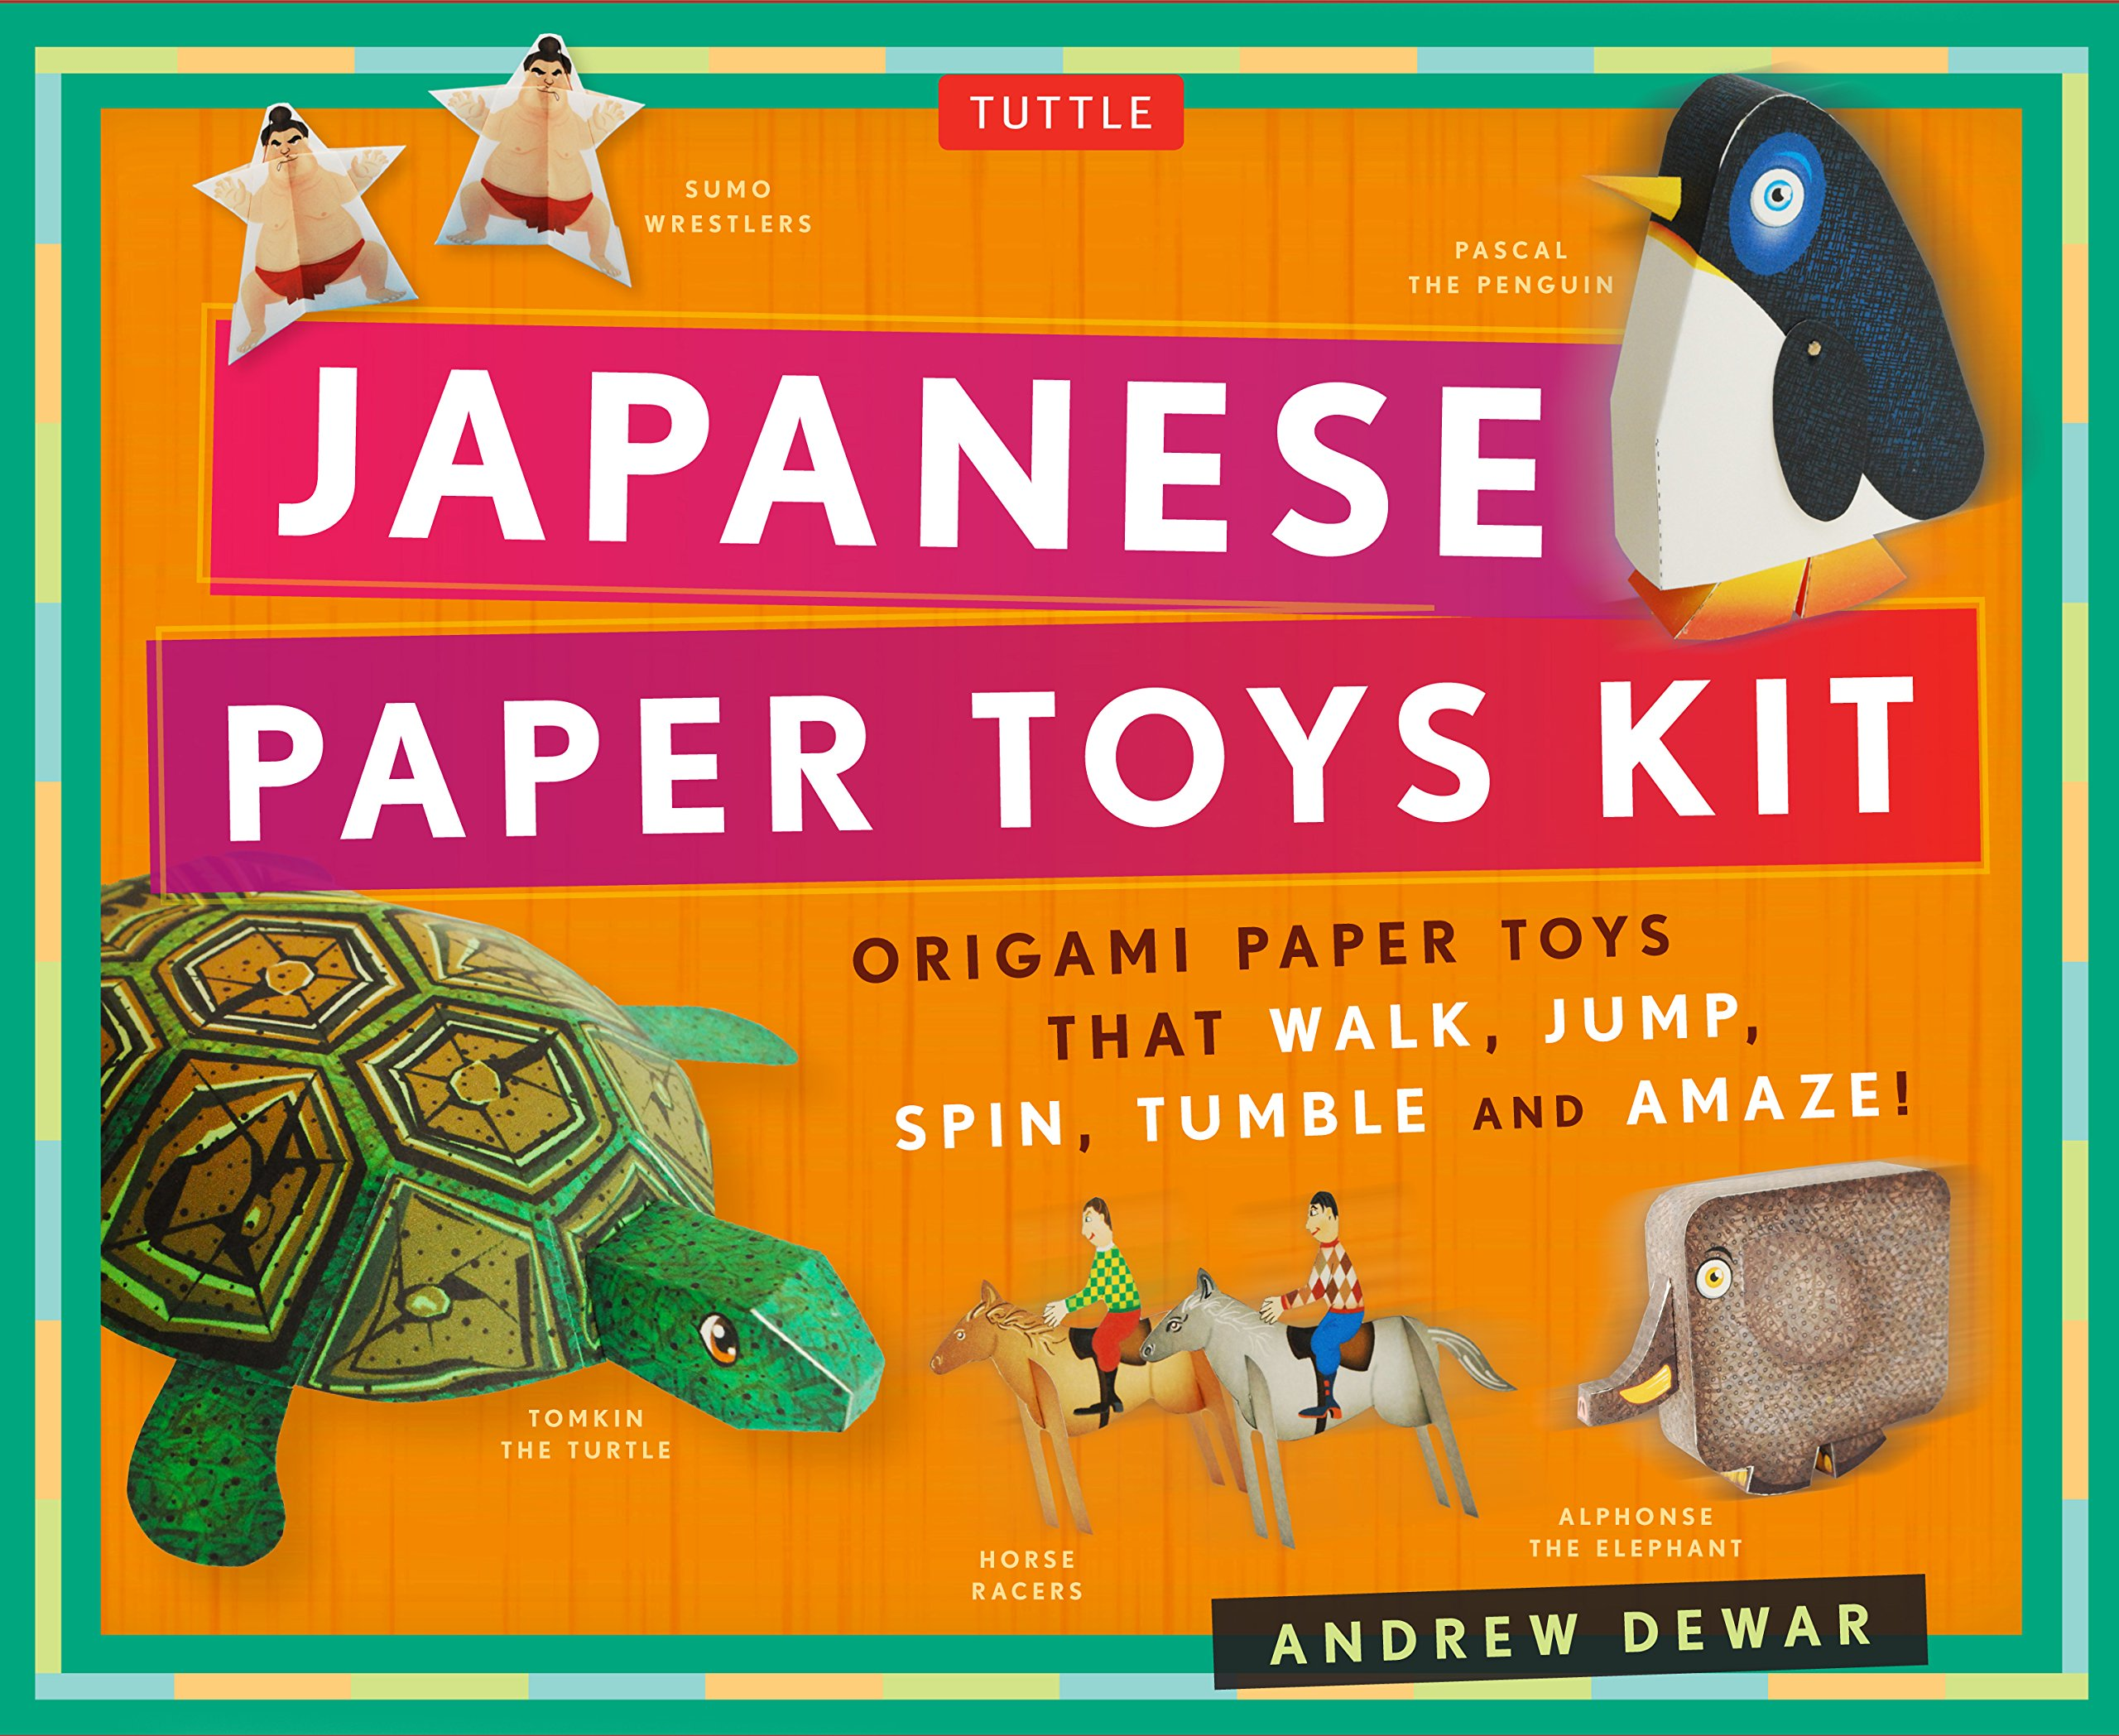 Japanese Paper Toys Kit: Origami Paper Toys that Walk, Jump, Spin, Tumble and Amaze! Paperback – September 27, 2016 Andrew Dewar Kostya Vints Tuttle Publishing 0804846324